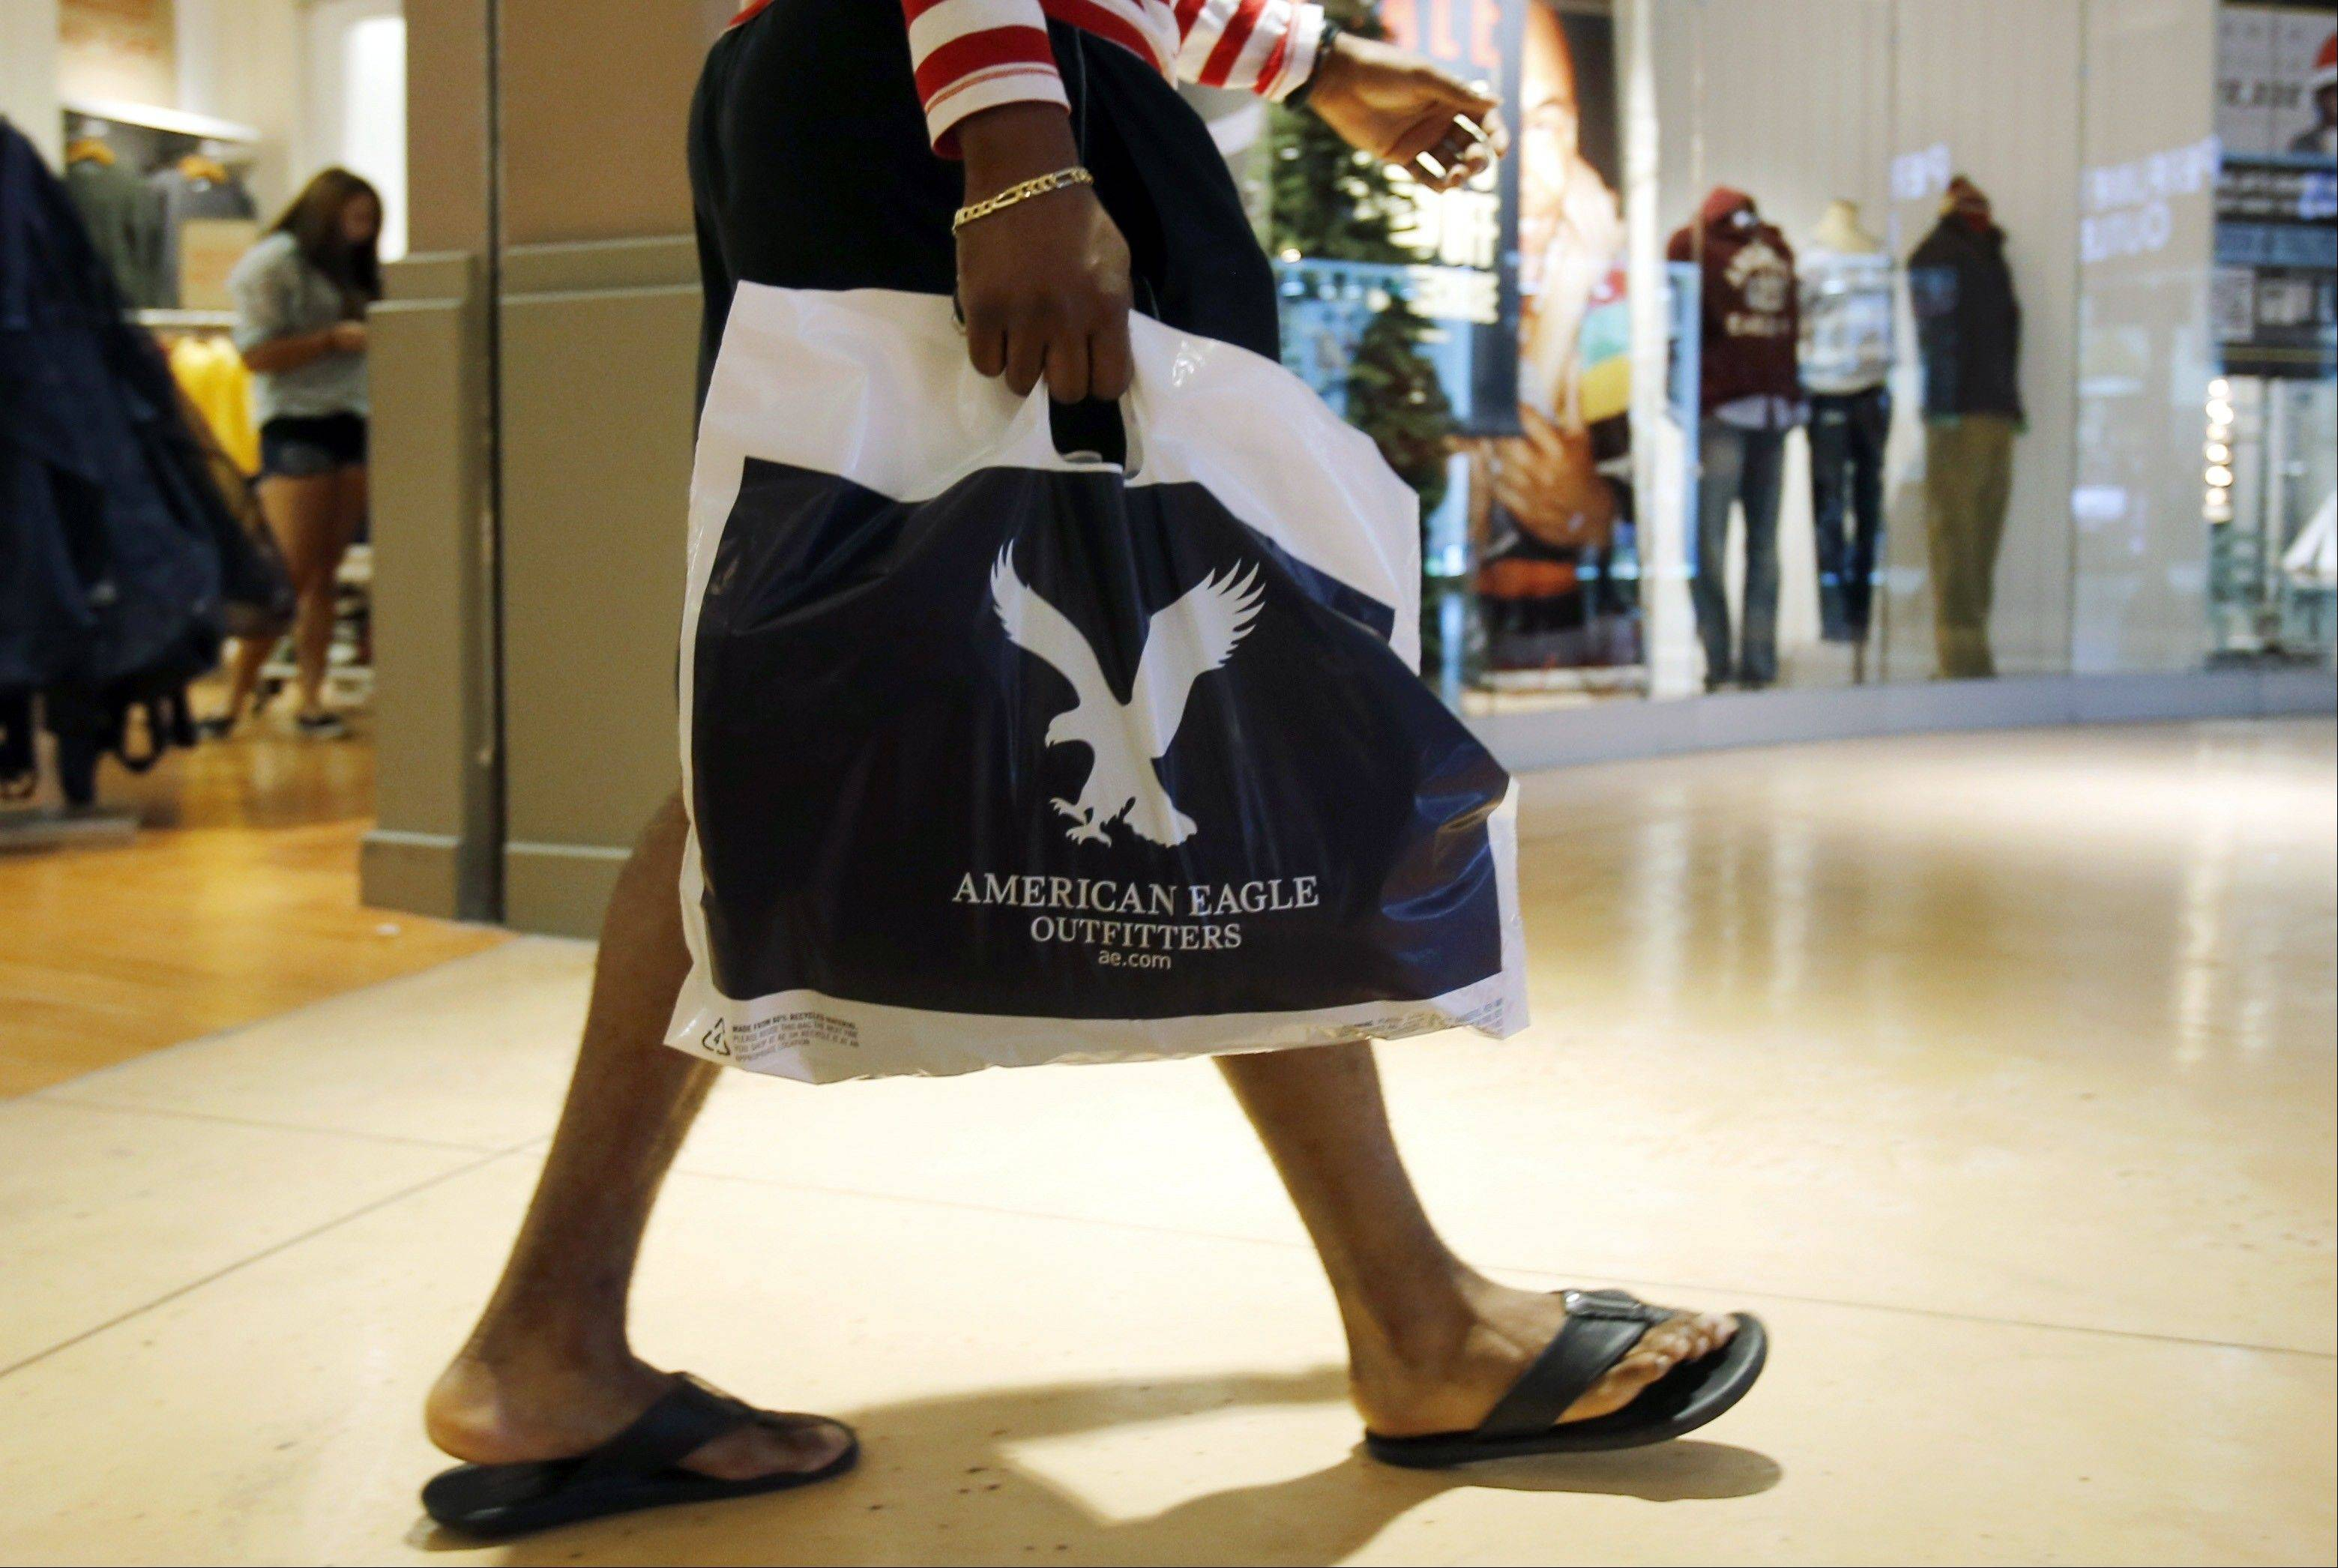 A last-minute surge in spending helped many major U.S. retailers report better-than-expected sales in December, a relief for stores that make up to 40 percent of annual revenue during the holiday period.